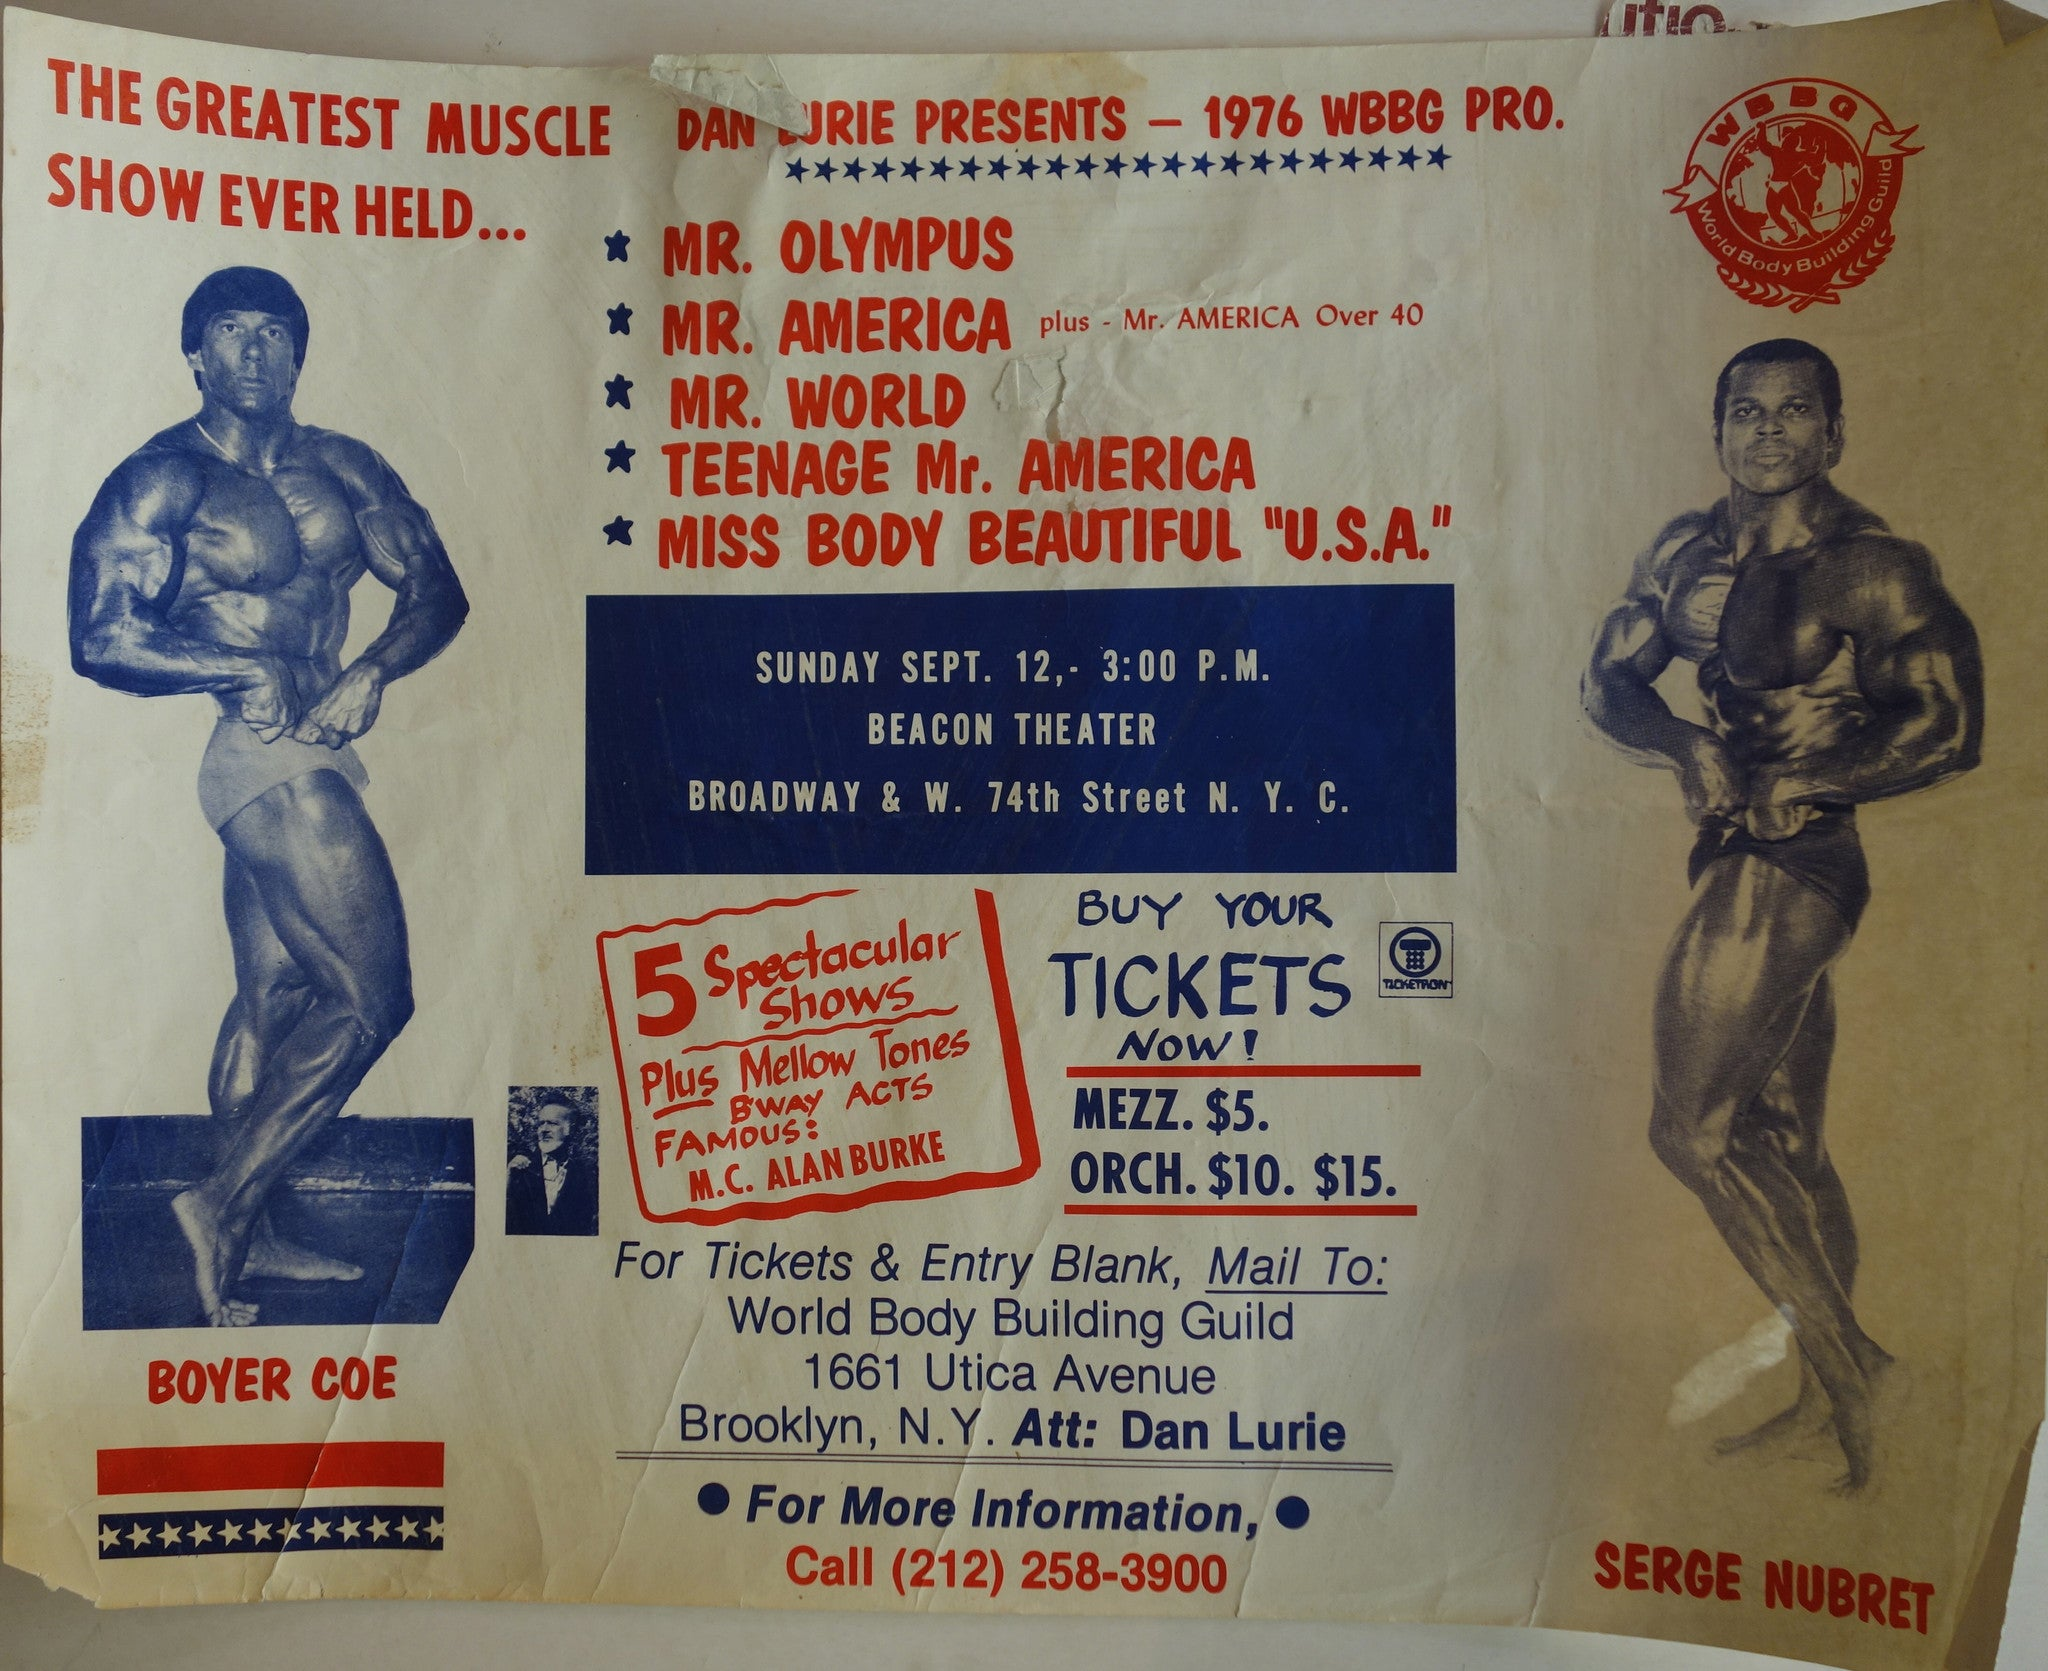 The Greatest Muscle Show Ever Held